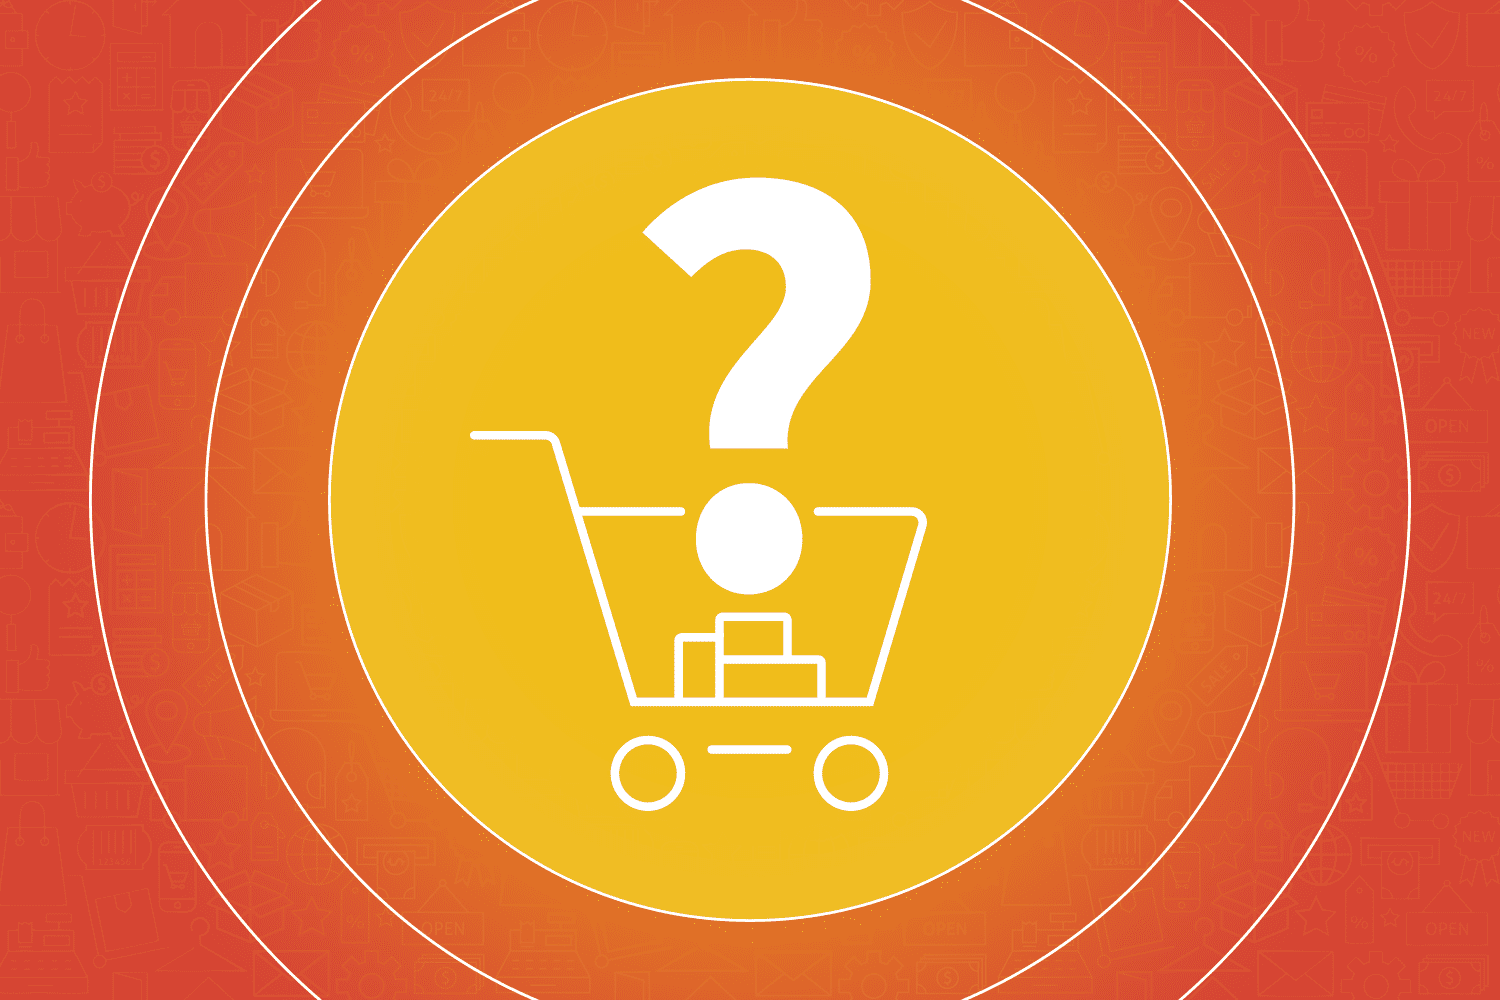 Shopping cart abandonment icon with a question mark above it